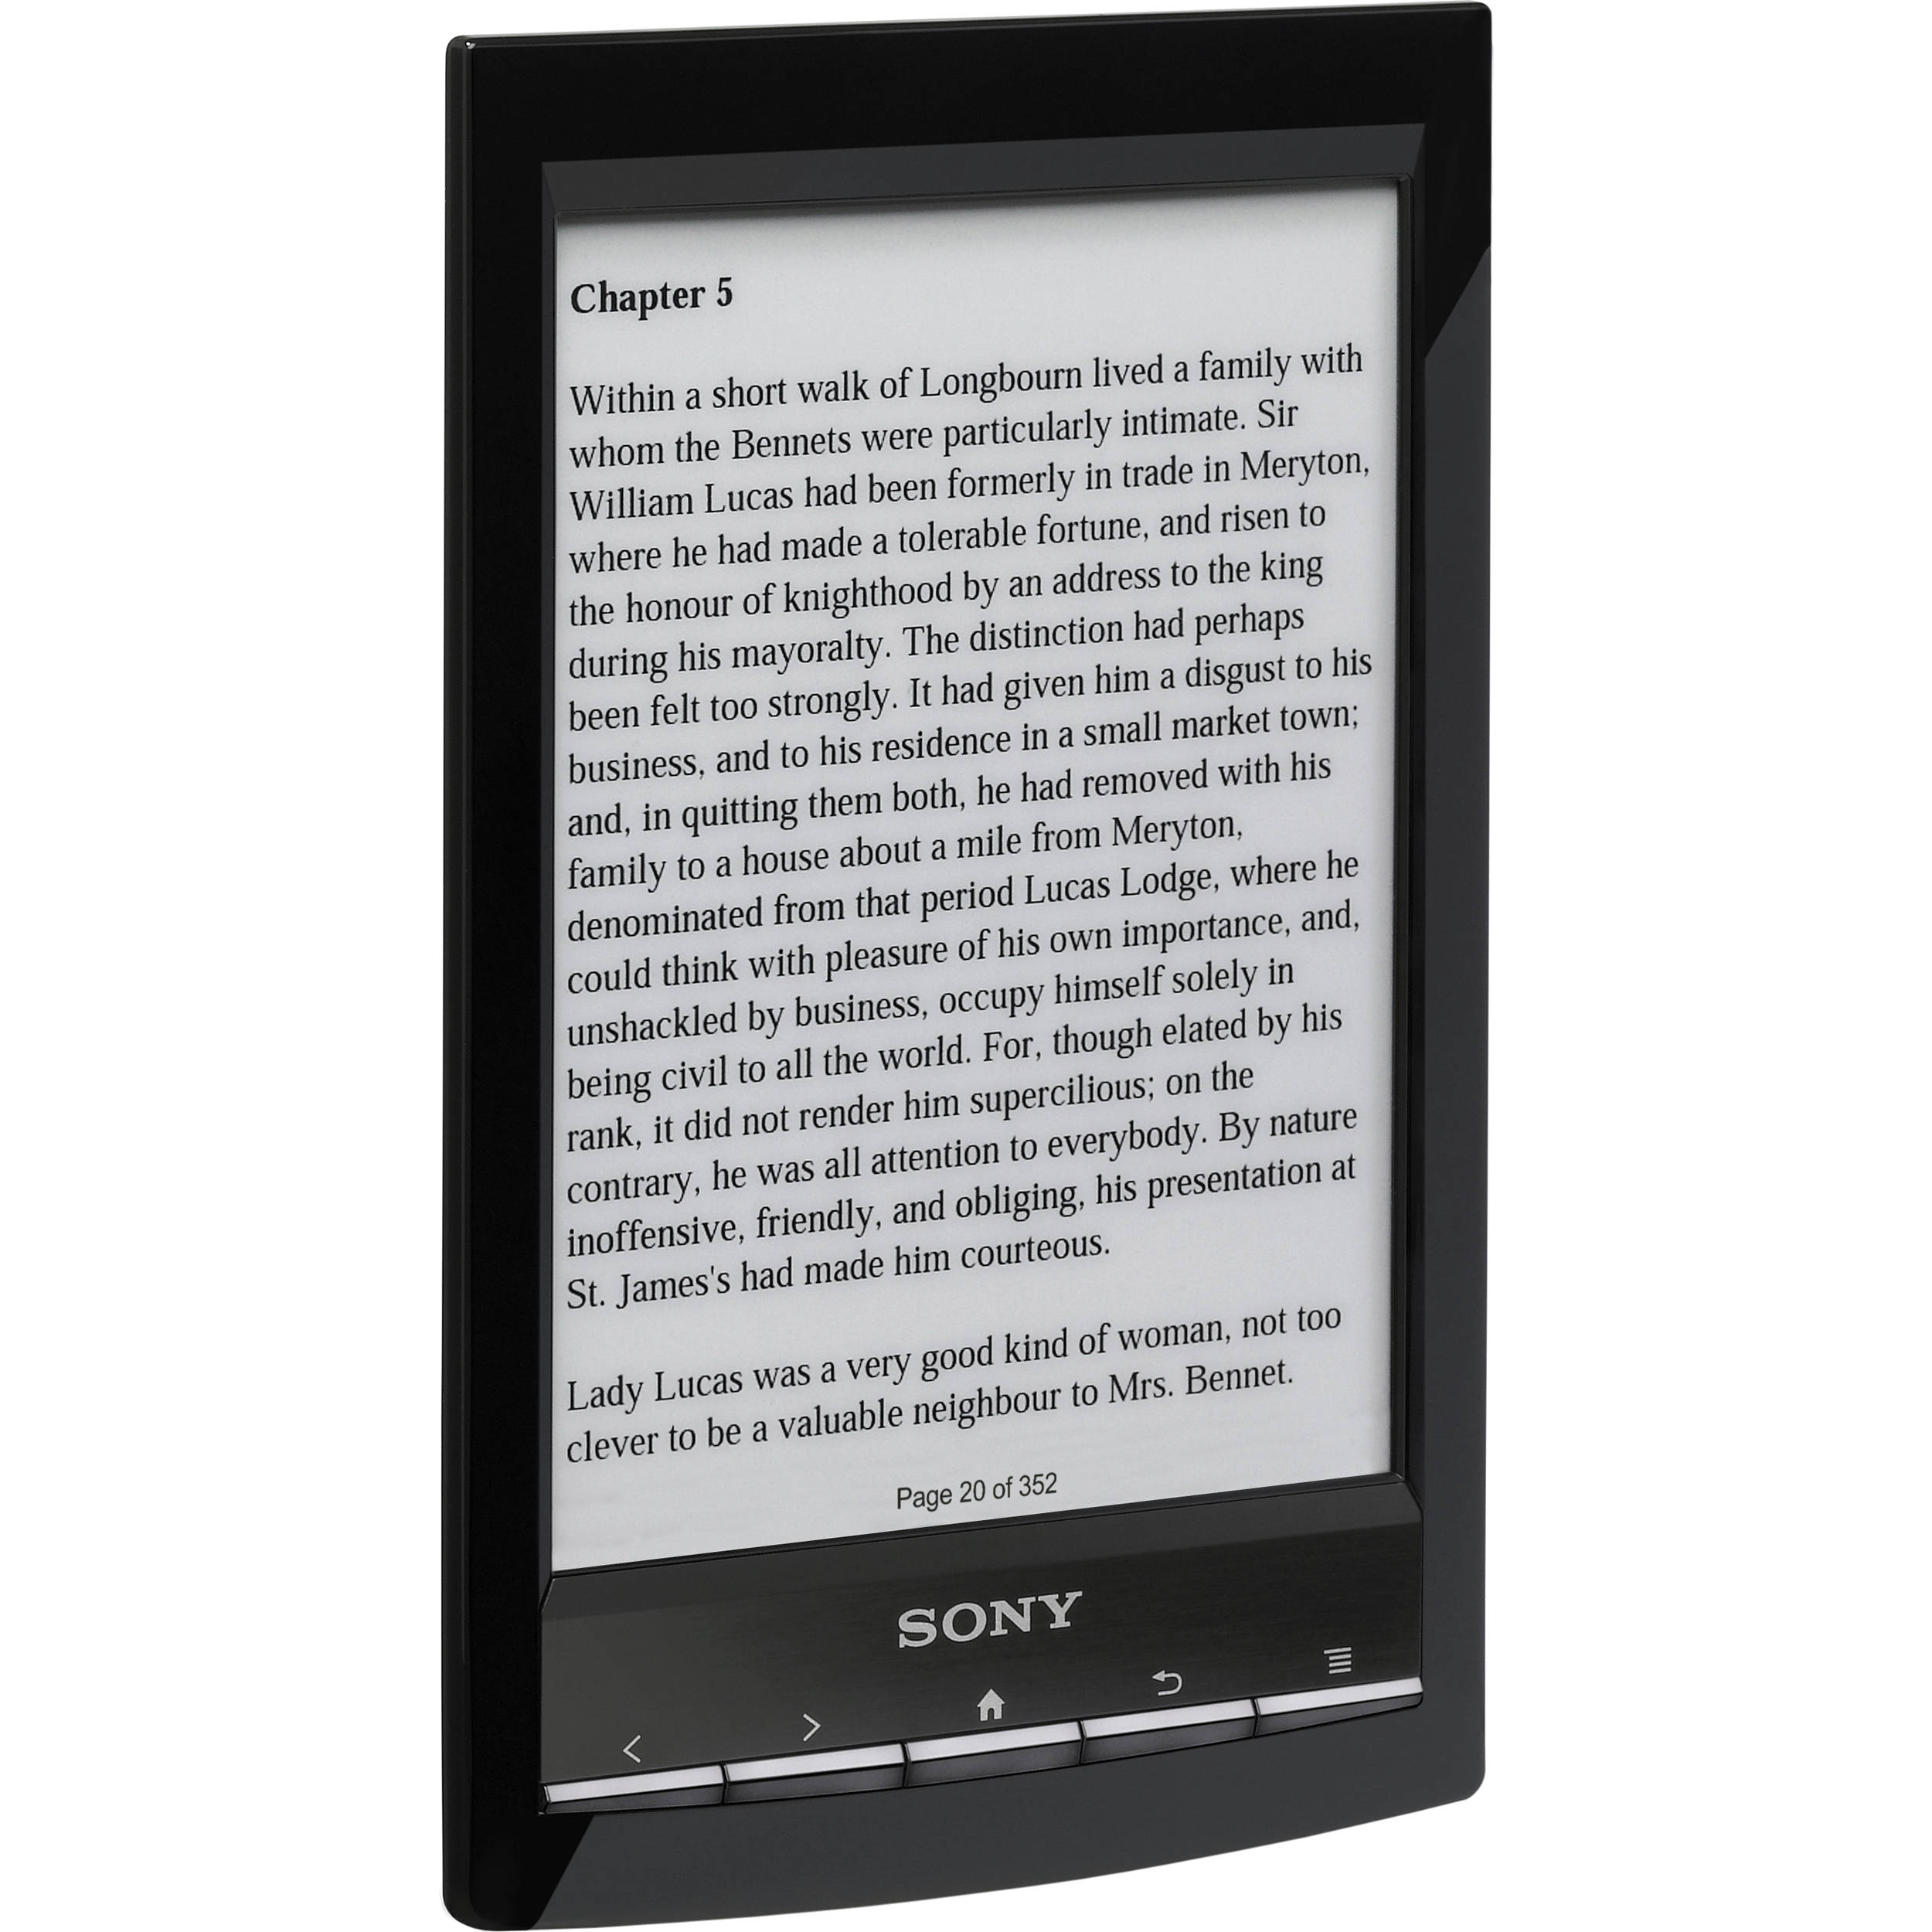 sony prs t1 wi fi reader black prs t1 bc b h photo video rh bhphotovideo com What Comes with the Sony PRS-600 Sony PRS- T2